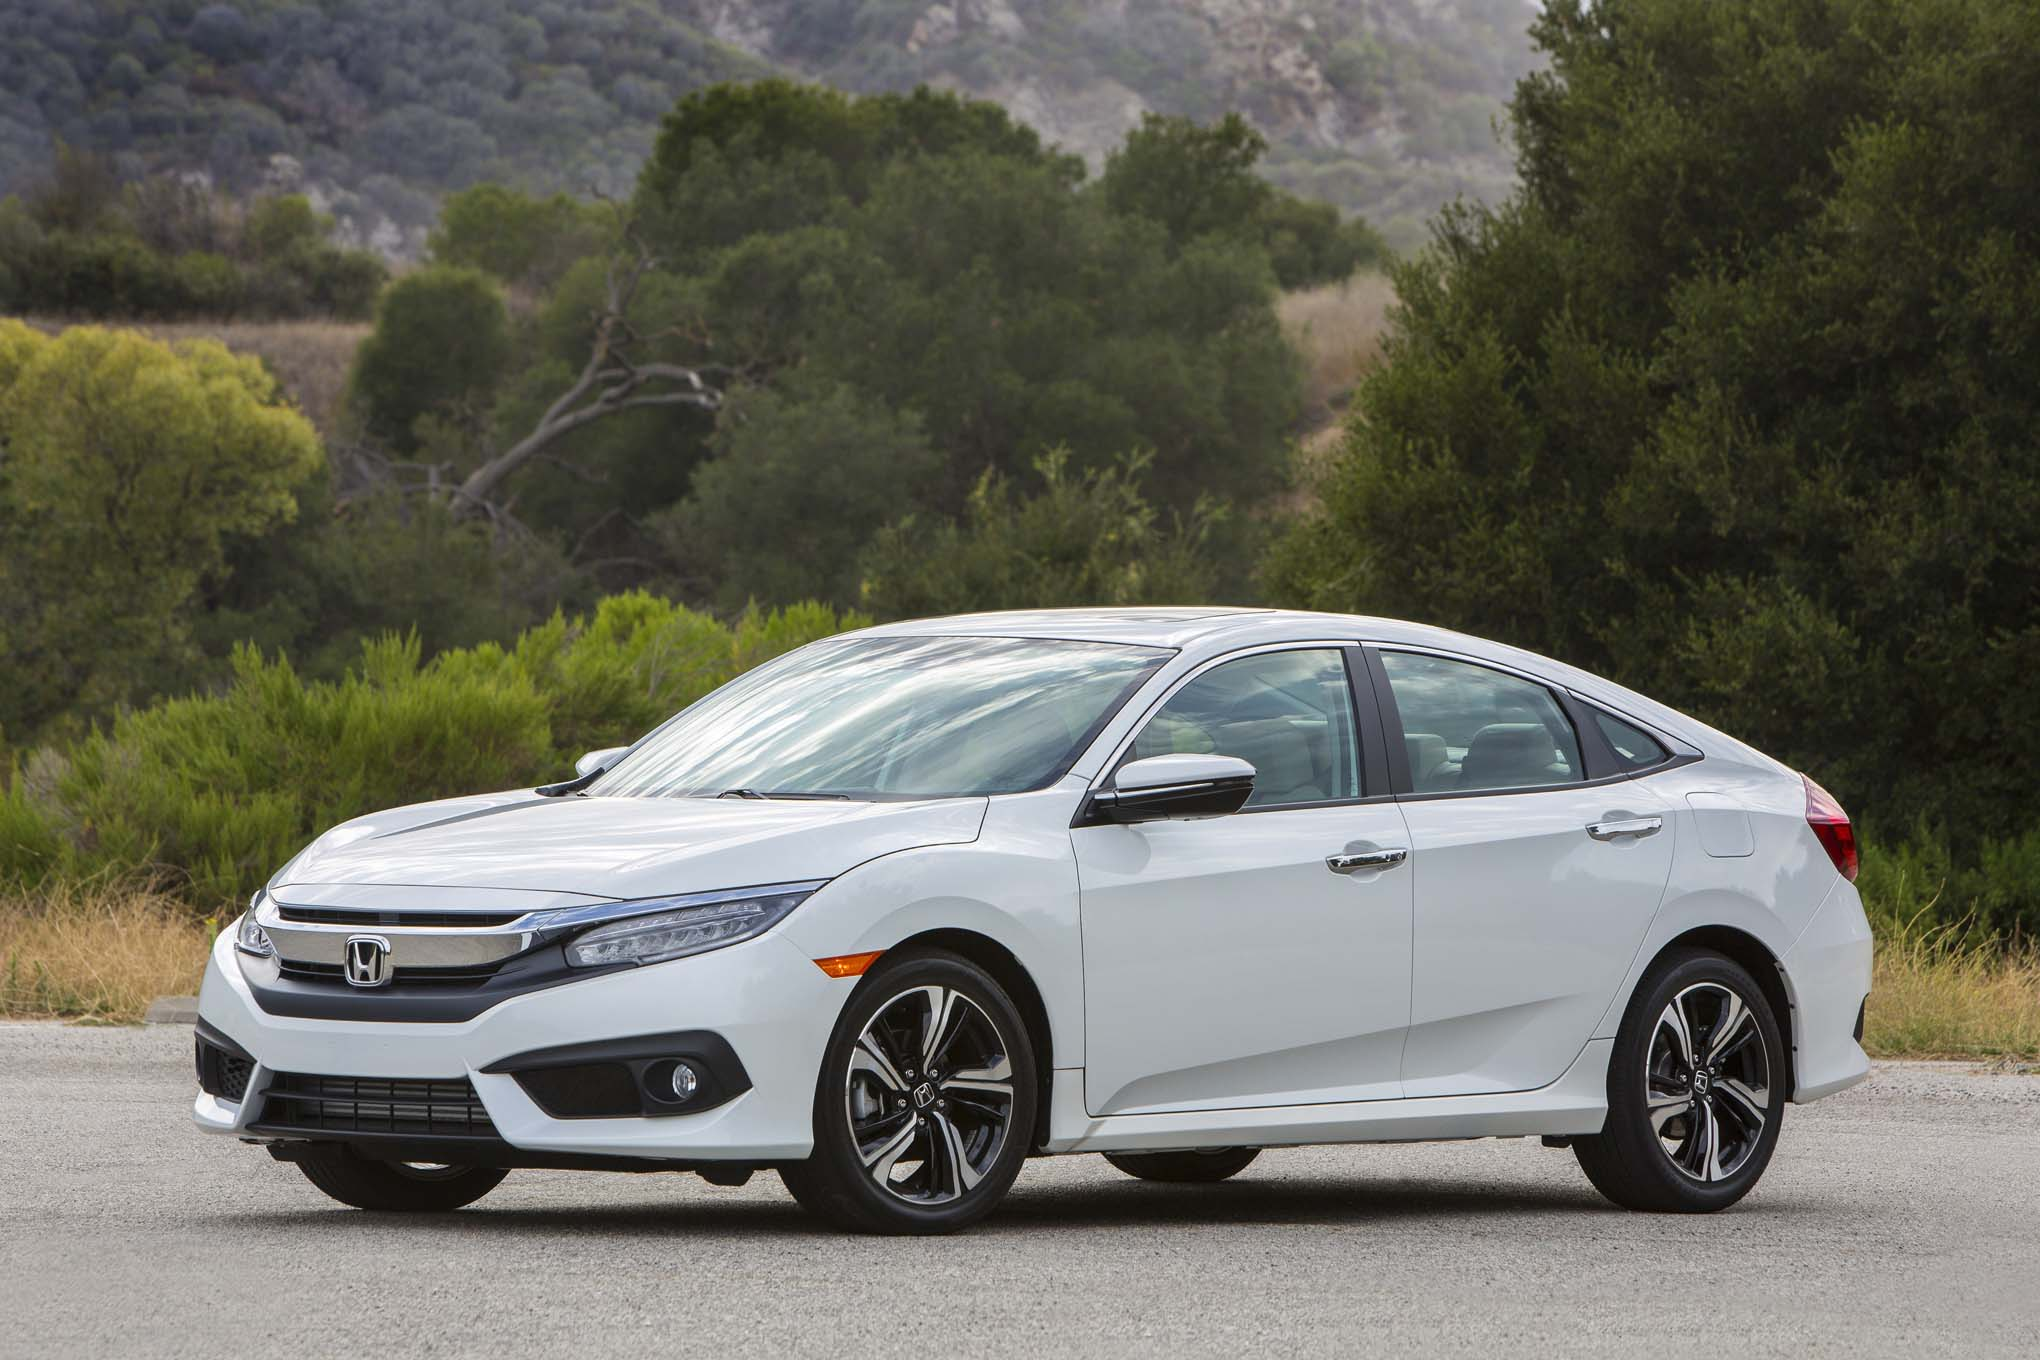 2017 honda civic hatchback starts at 20 535 automobile - 2016 honda civic si coupe interior ...